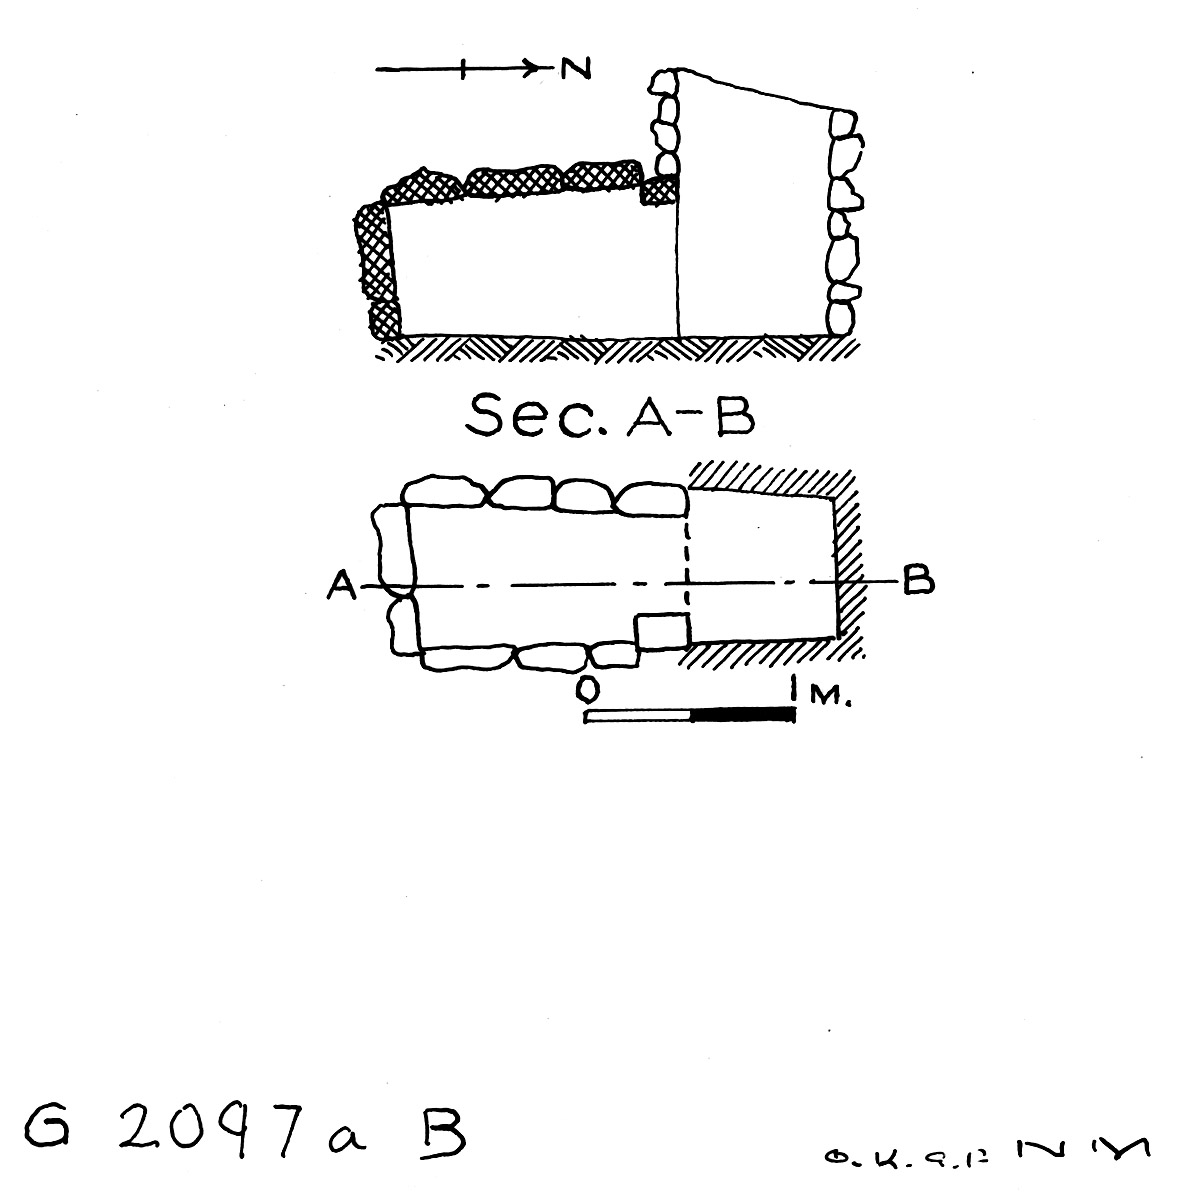 Maps and plans: G 2097a, Shaft B